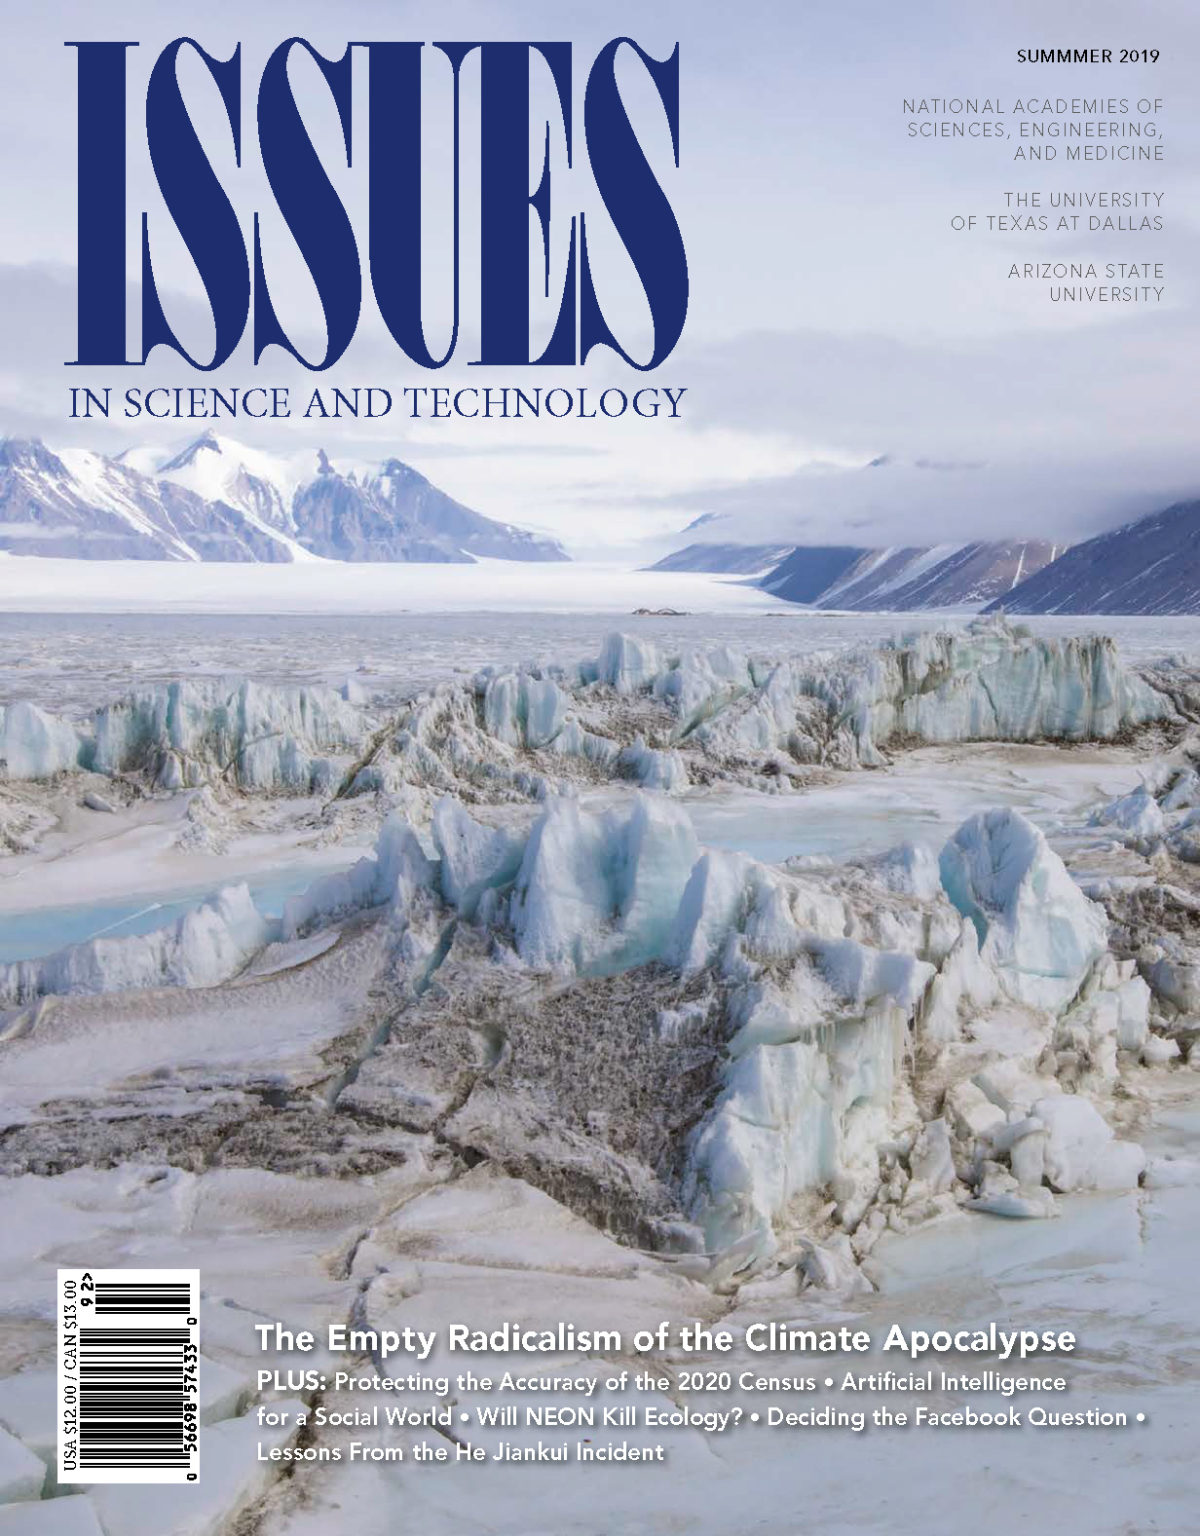 Cover of the Summer 2019 ISSUES IN SCIECE AND TECHNOLOGY